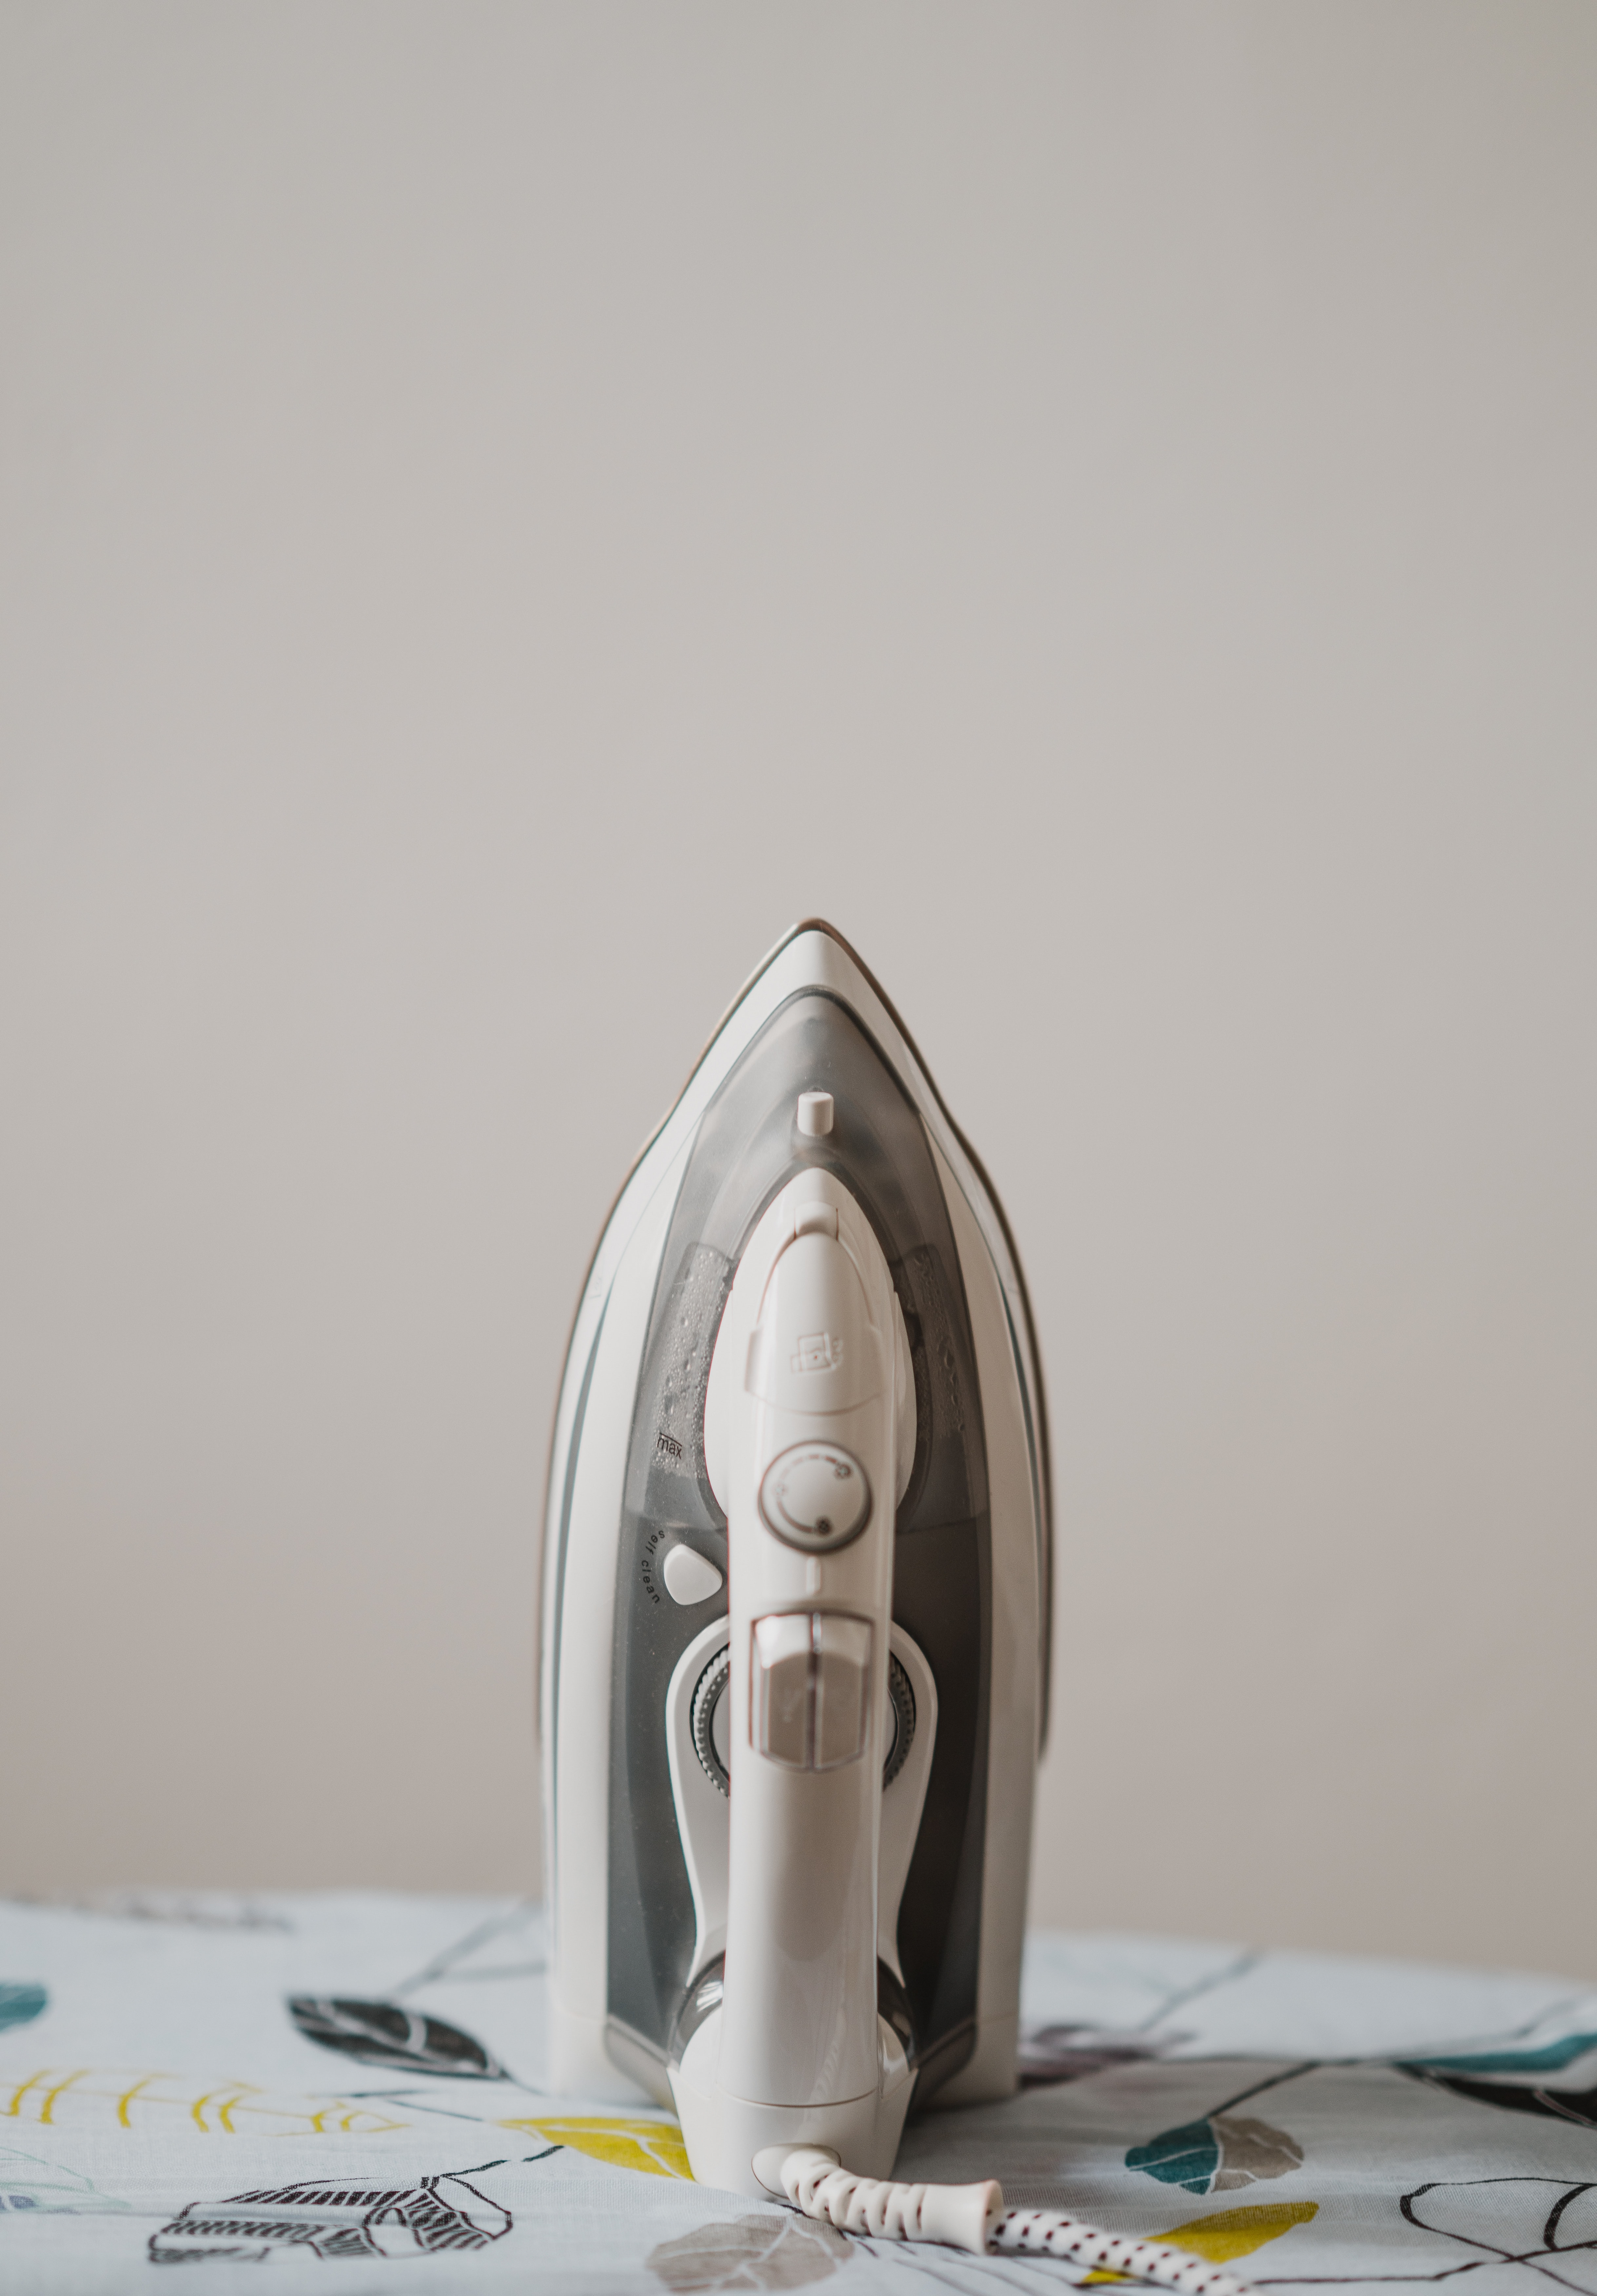 used white and gray steam iron